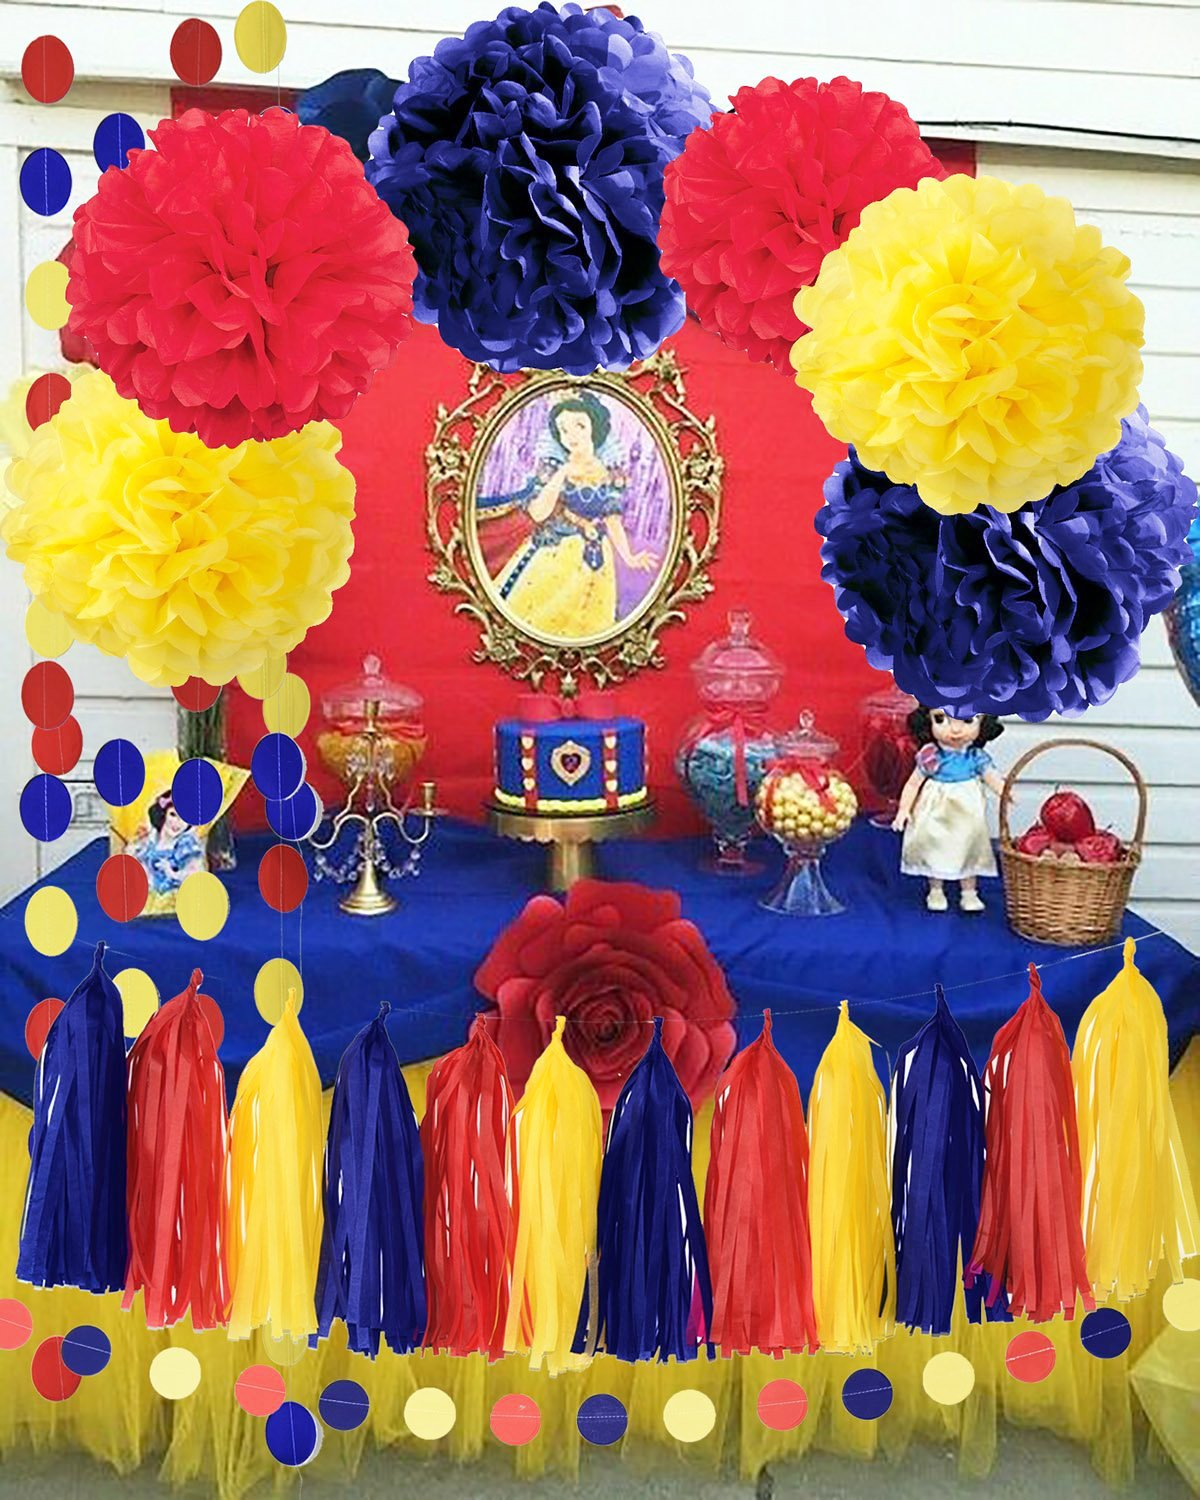 Qian's Party Snow White Color Party Supplies Yellow Navy Red Snow White Birthday Party Decorations/Tissue Pom Poms Circle Garland for Snow White Princess Birthday Decorations by Qian's Party